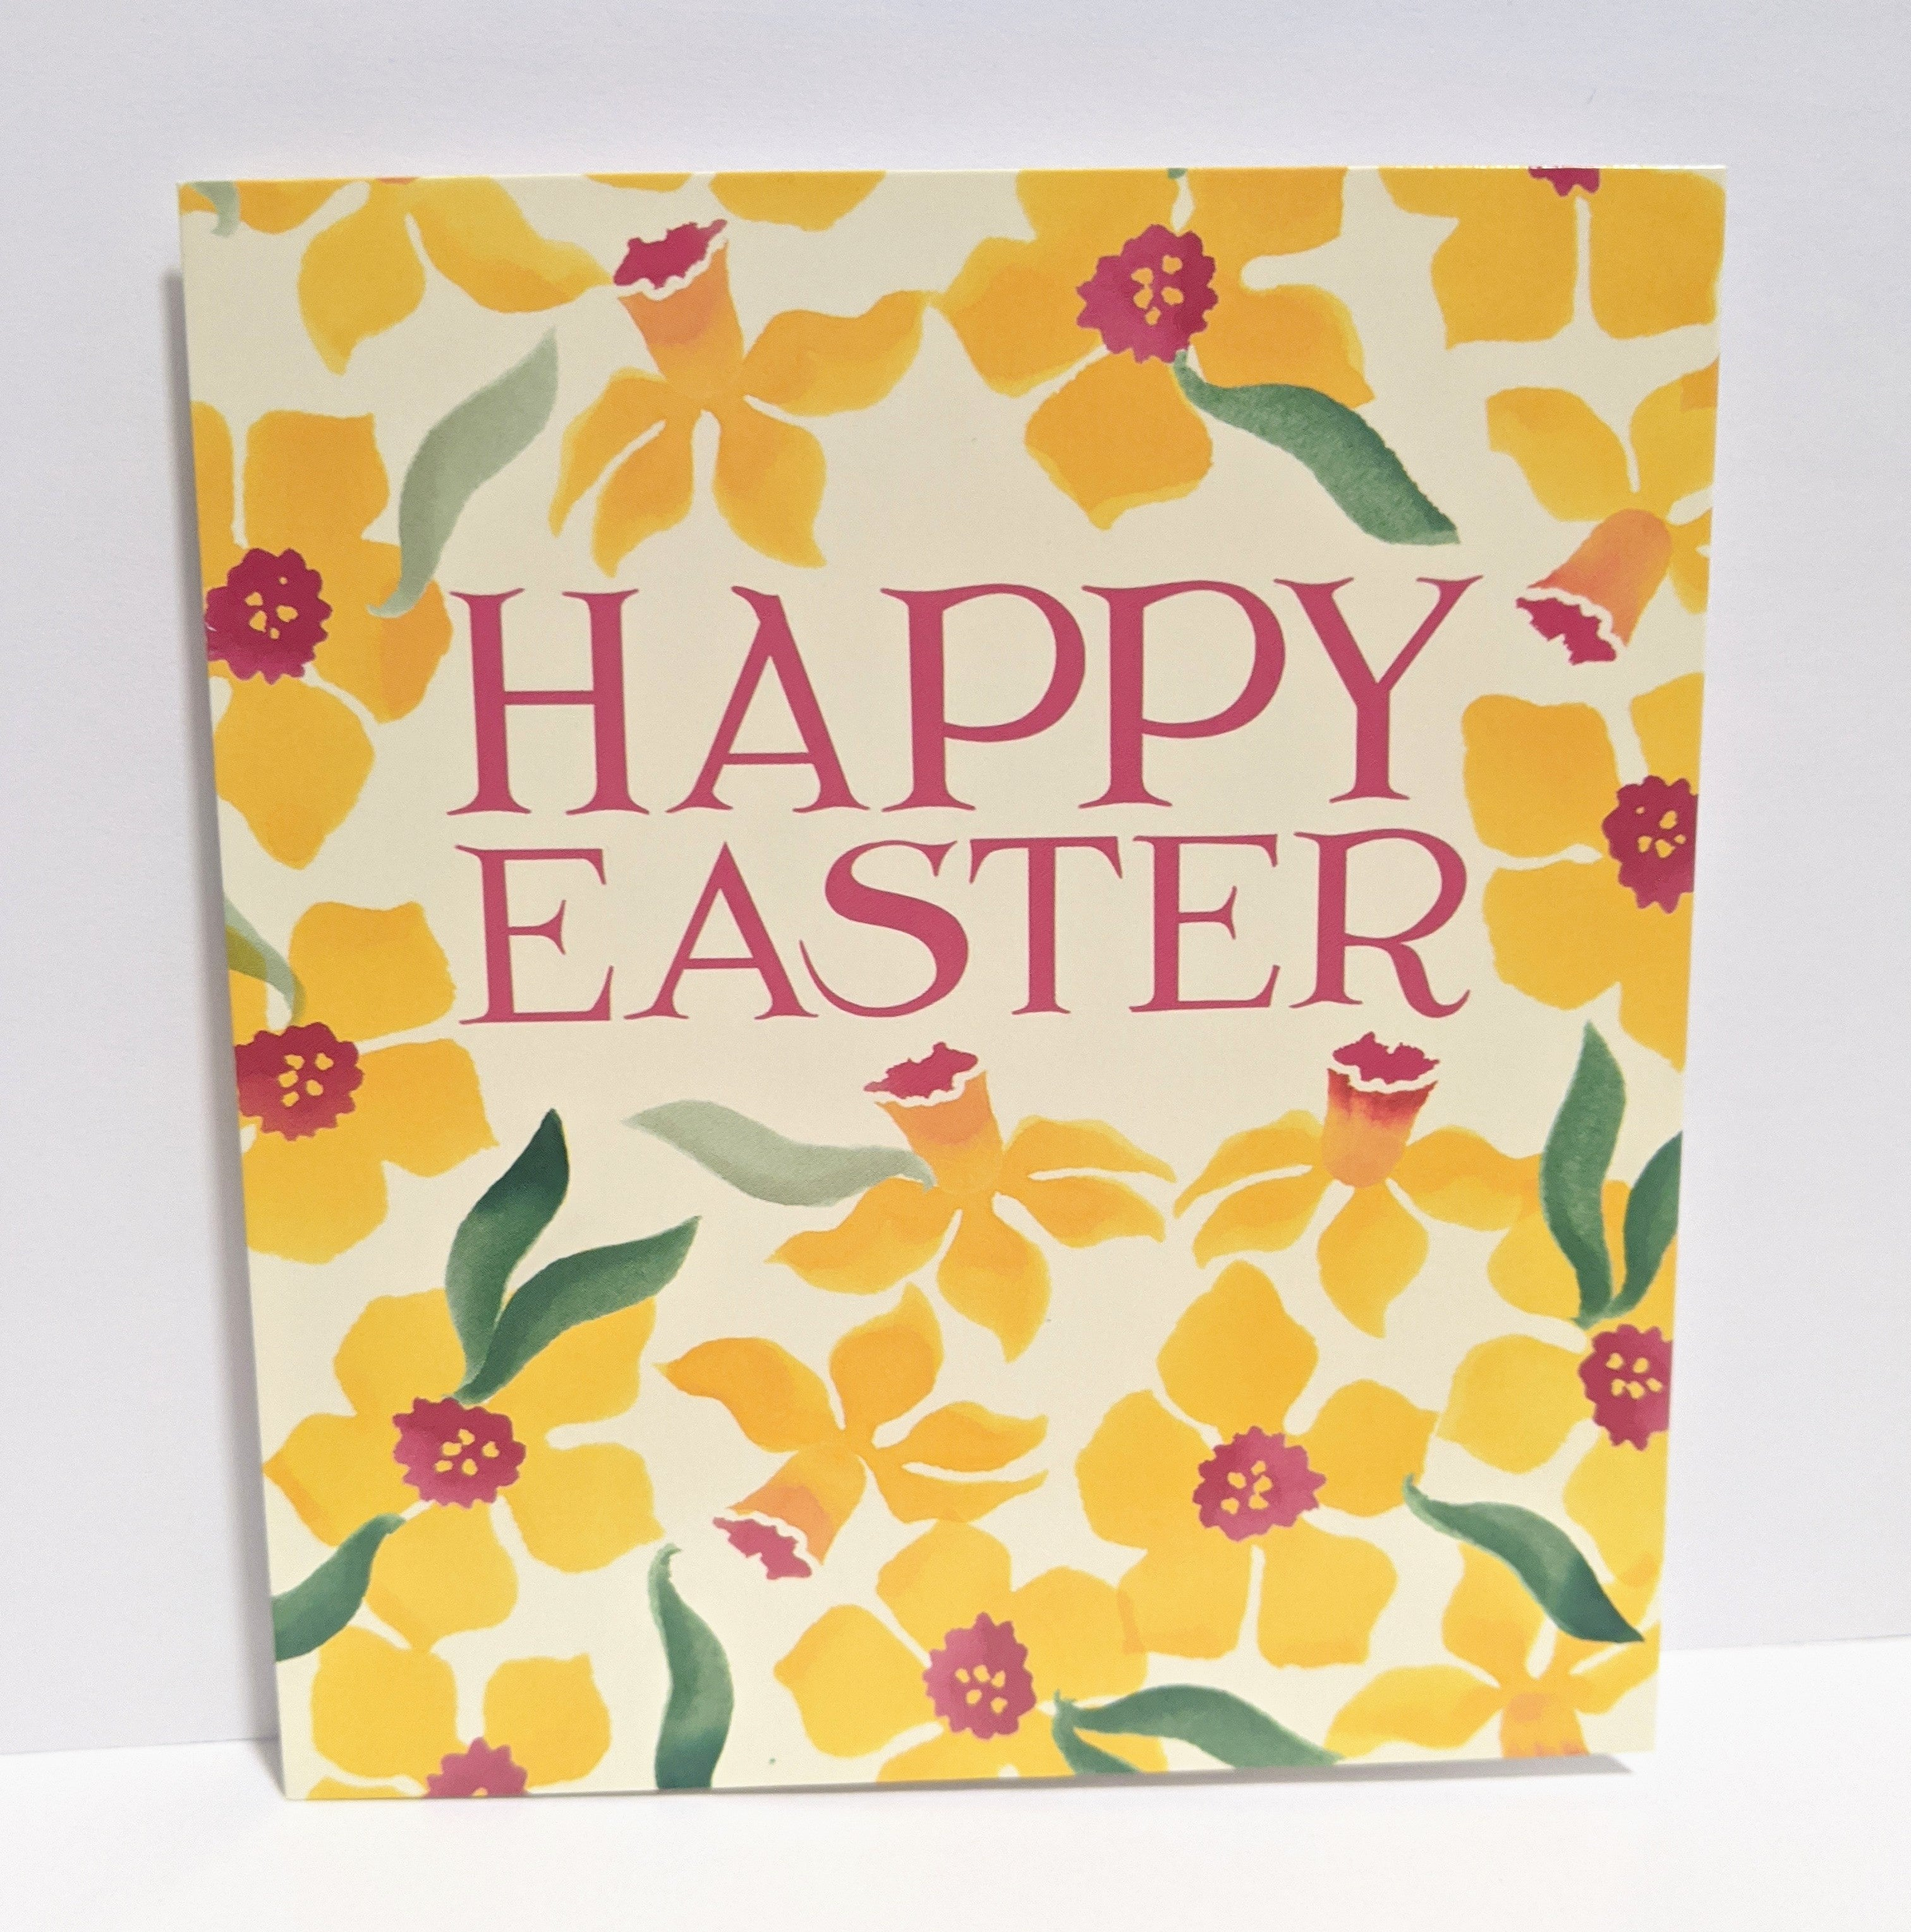 Pack of 5 Bunny Happy Easter Greeting Cards In Same Design